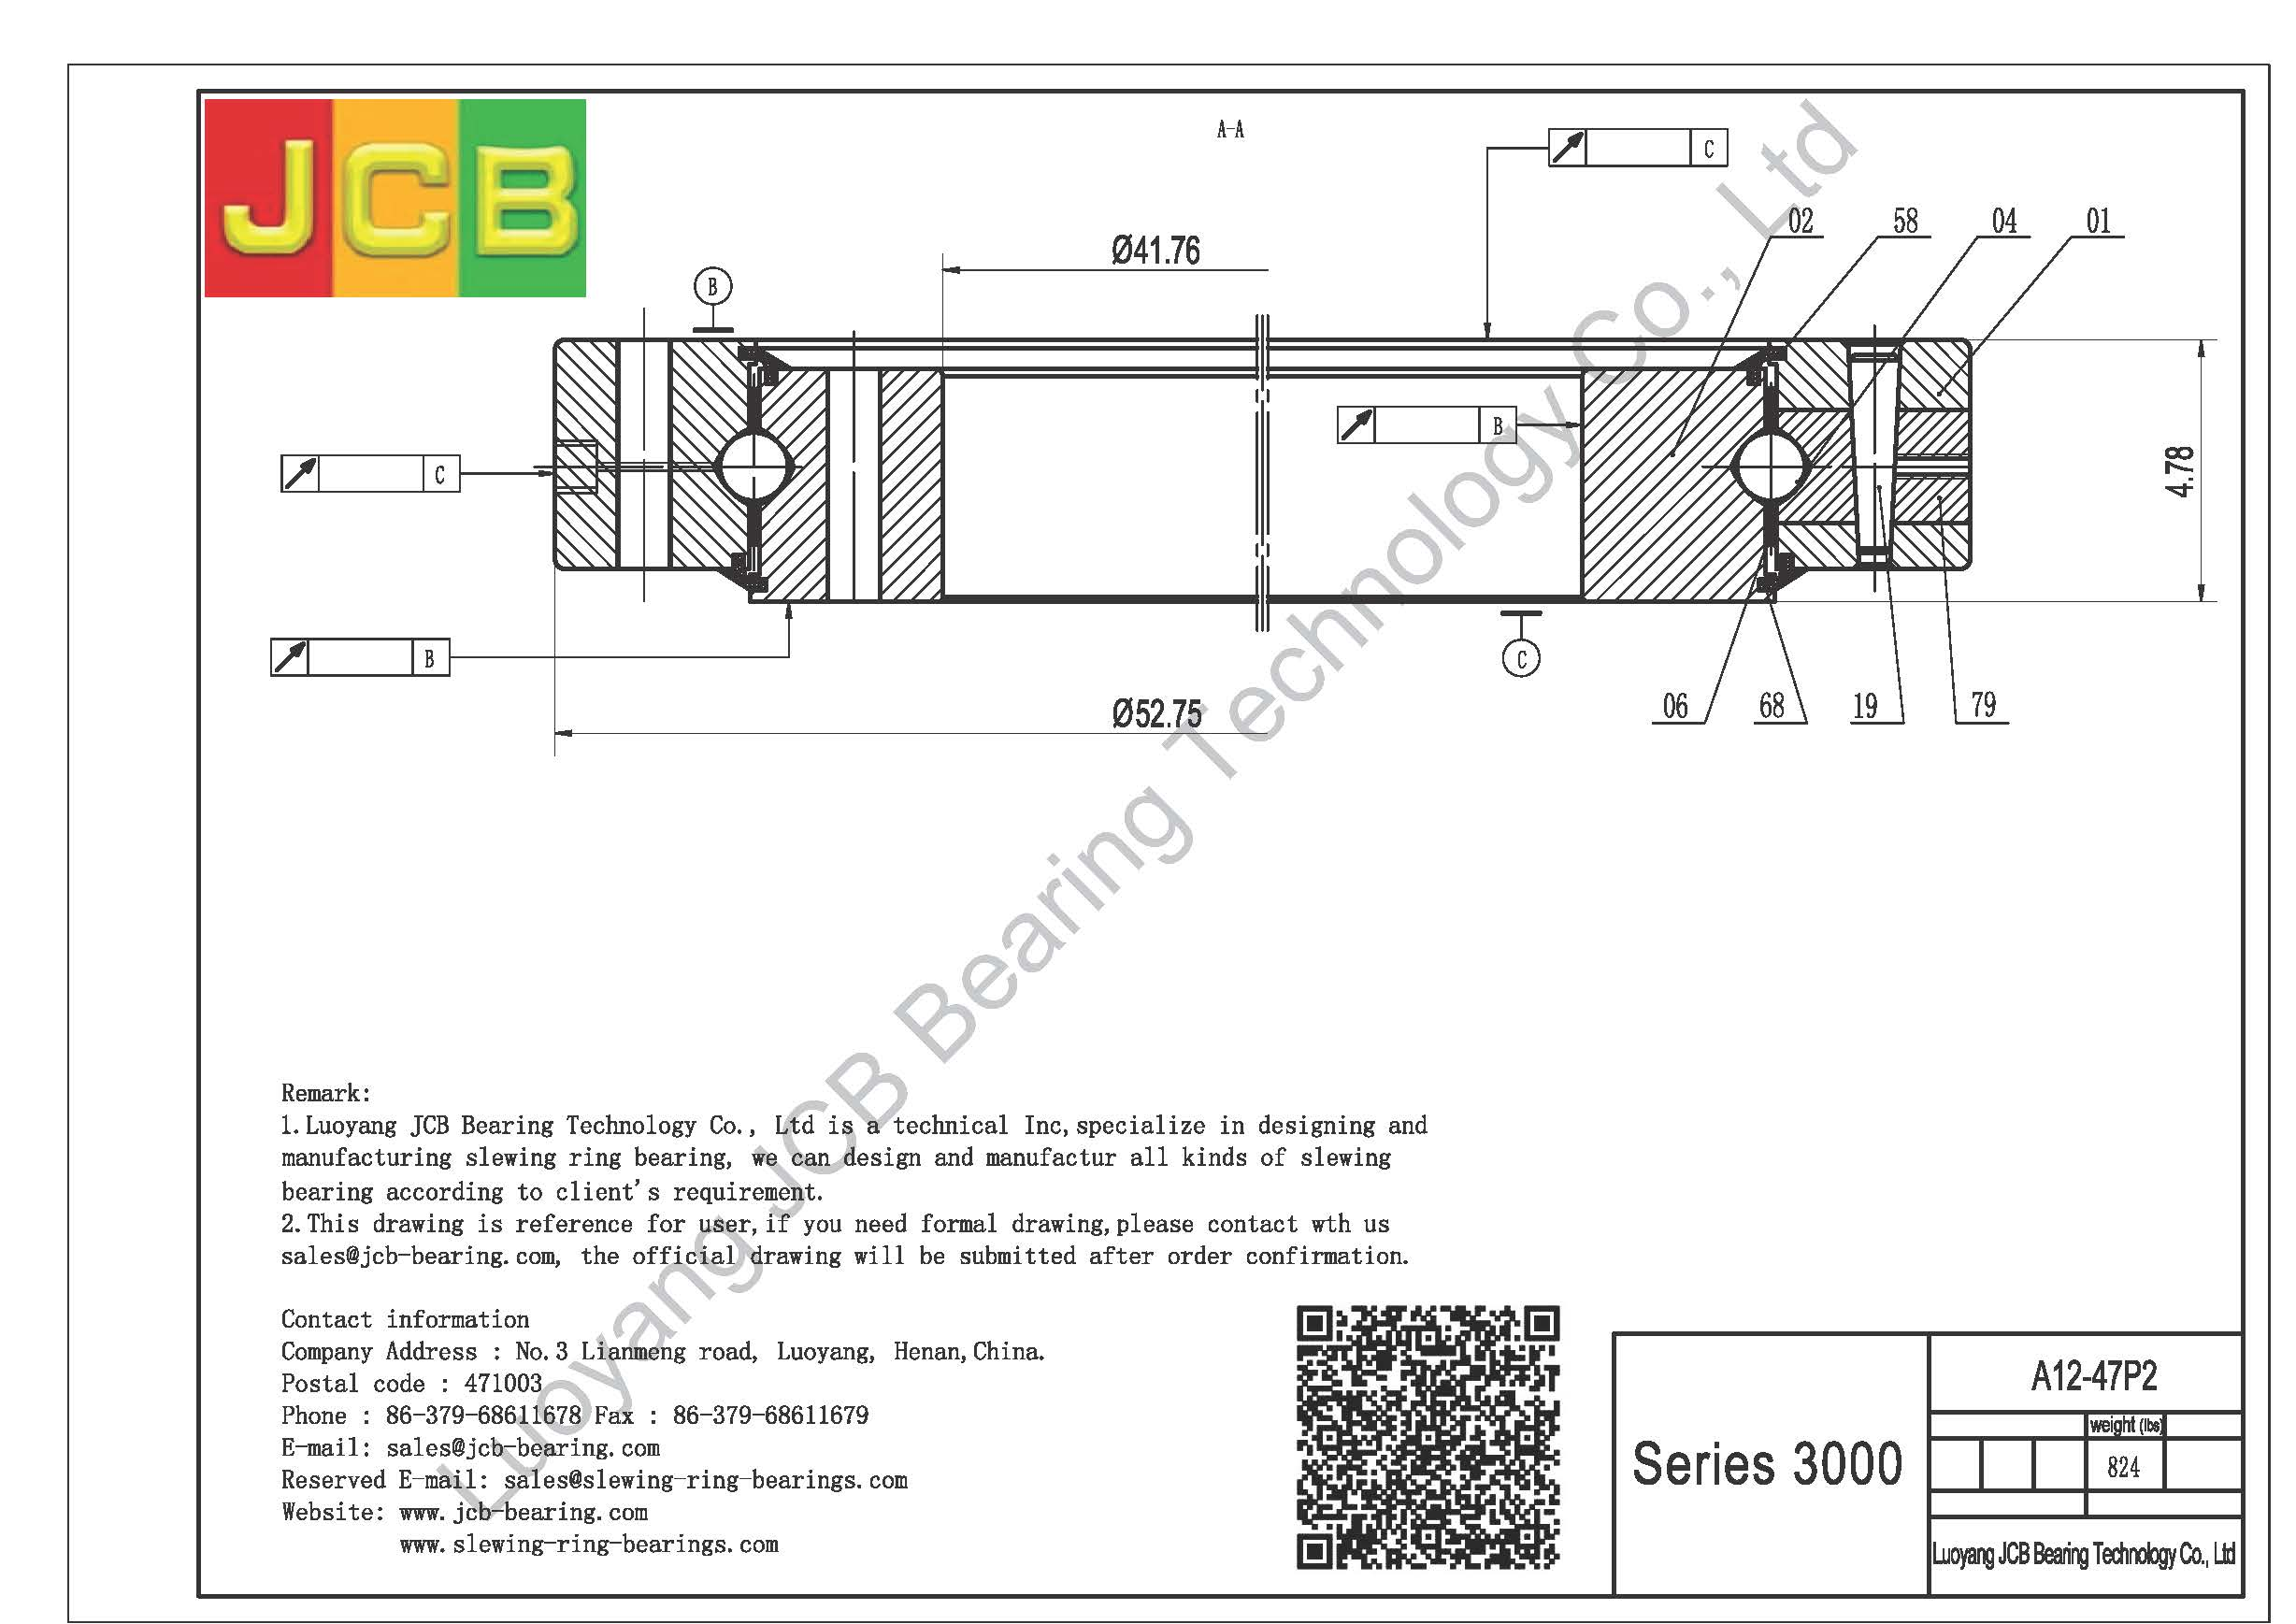 DRAWINGS ROTEK - MANUFACTUTERE OF QUALITY SLEWING BEARING